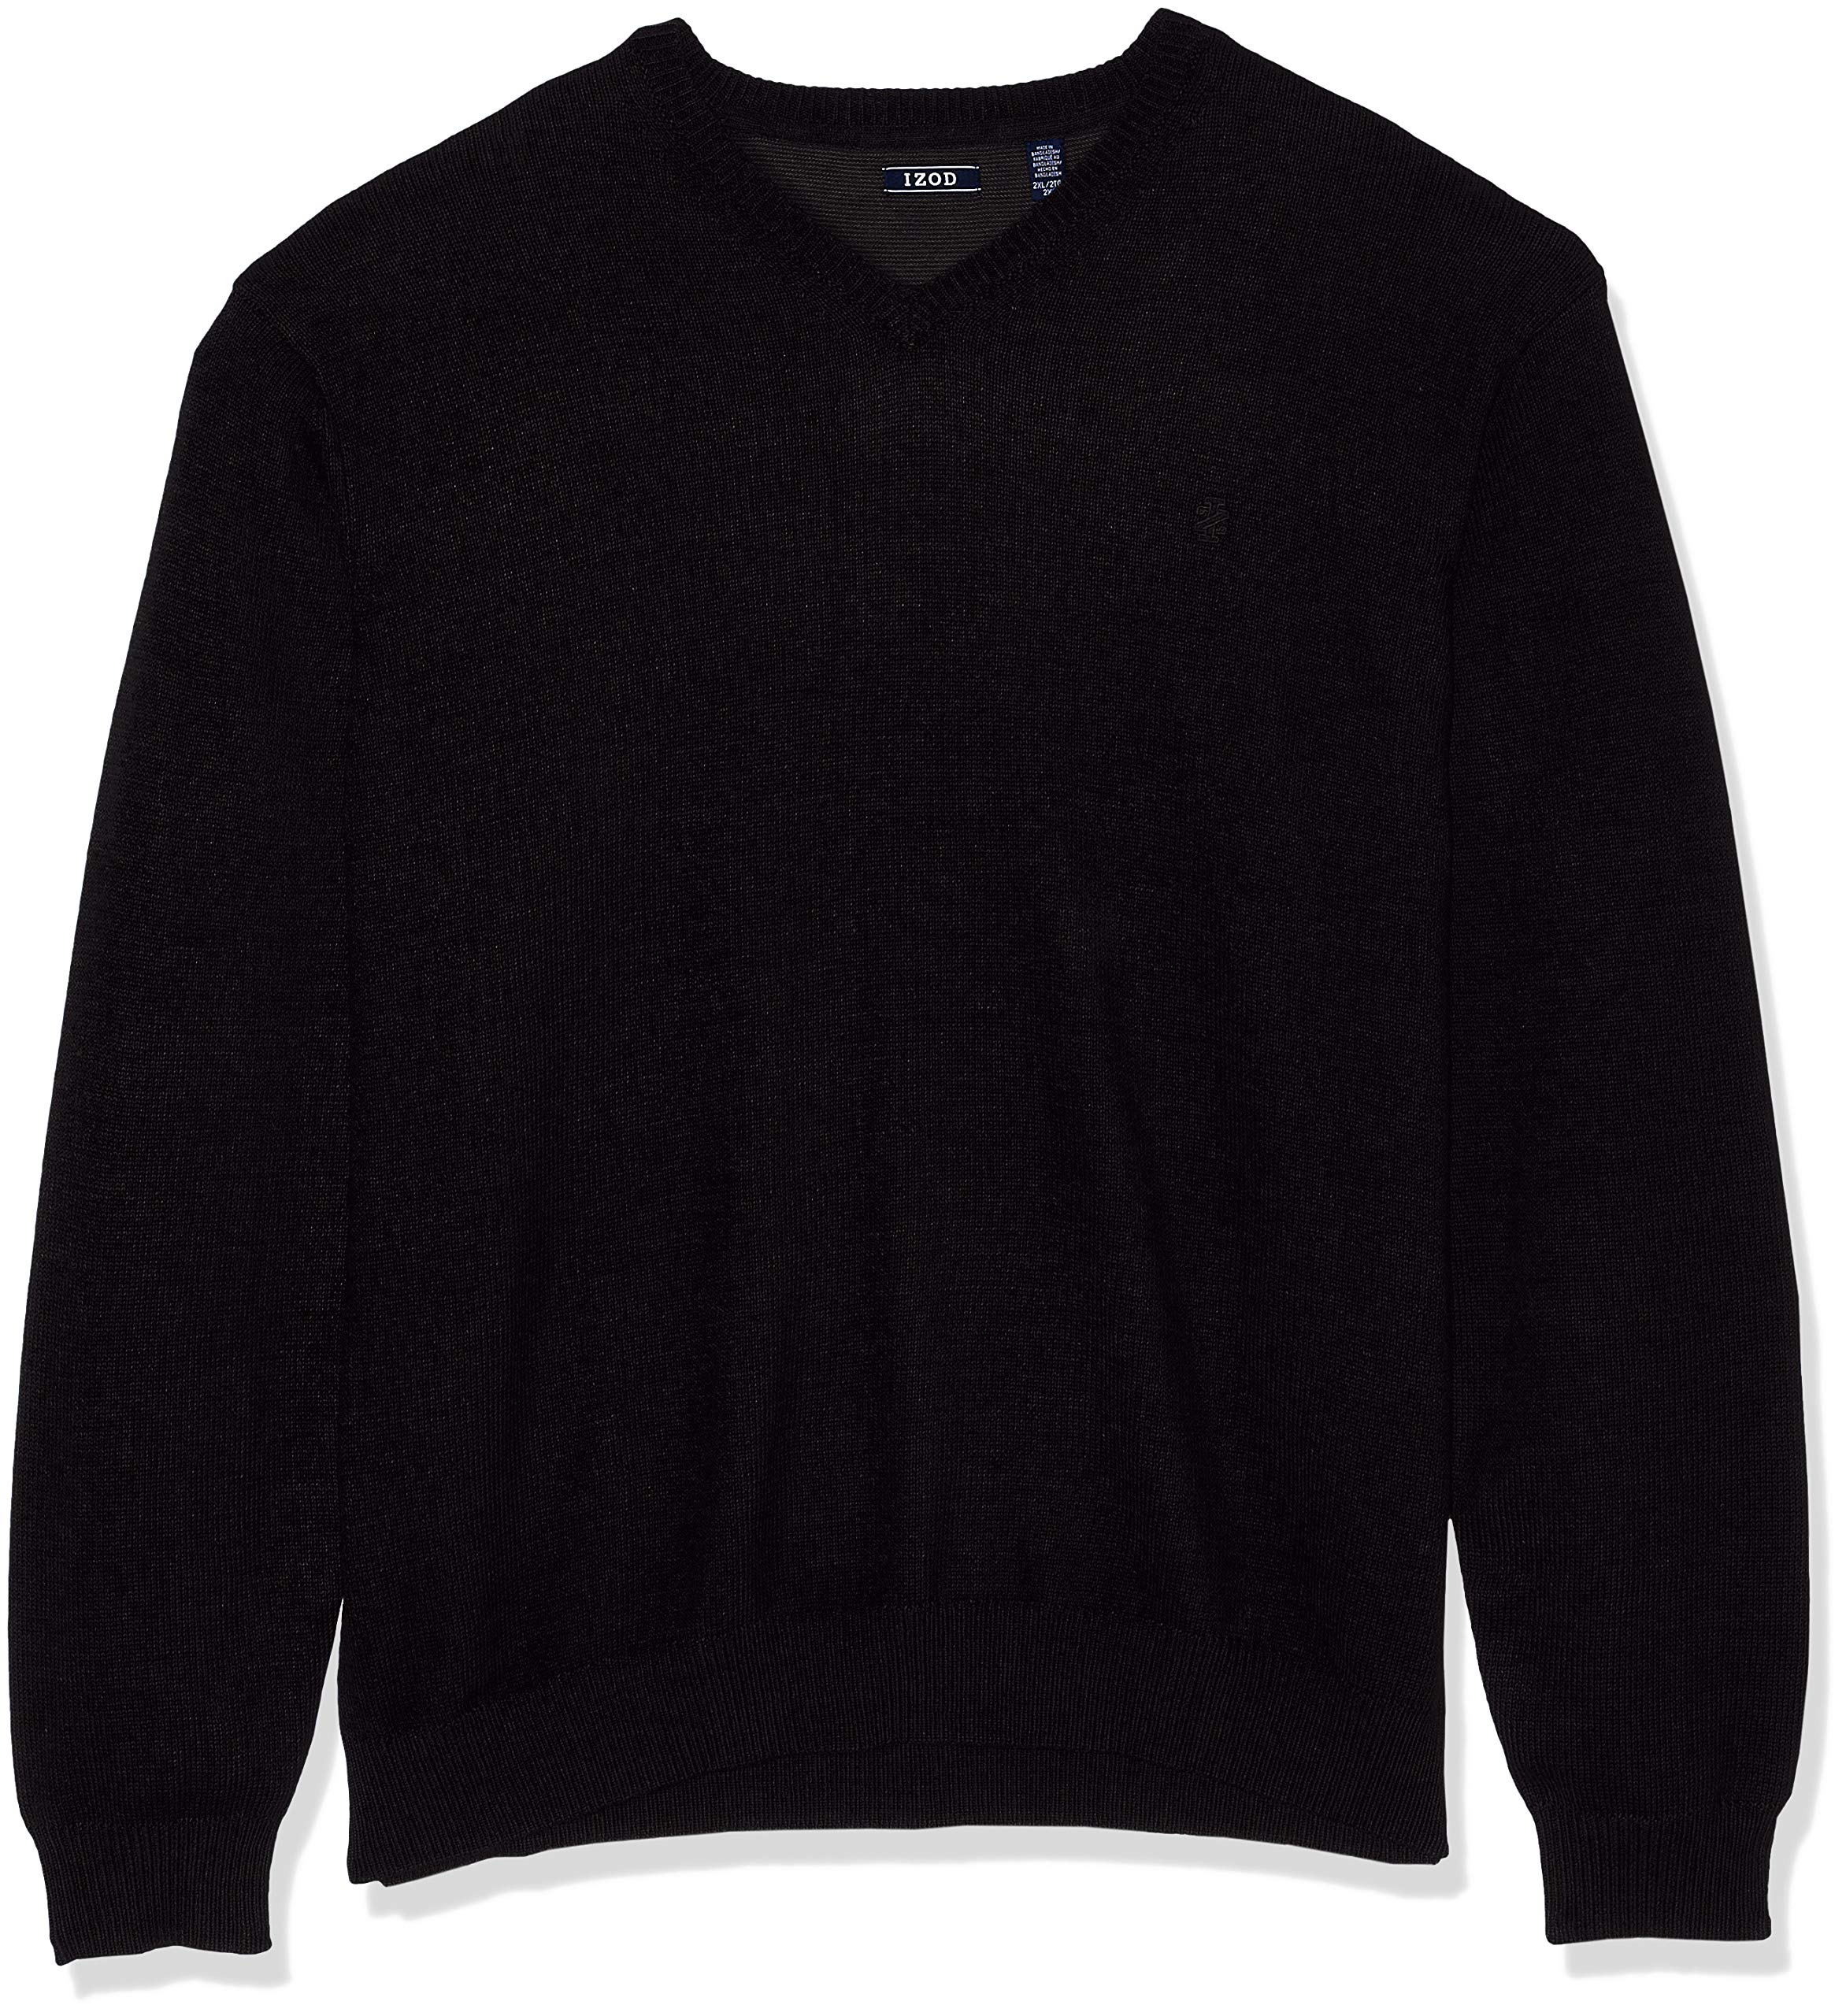 IZOD Men's Big and Tall Fine Gauge Solid V-Neck Sweater, New Black, 2X-Large